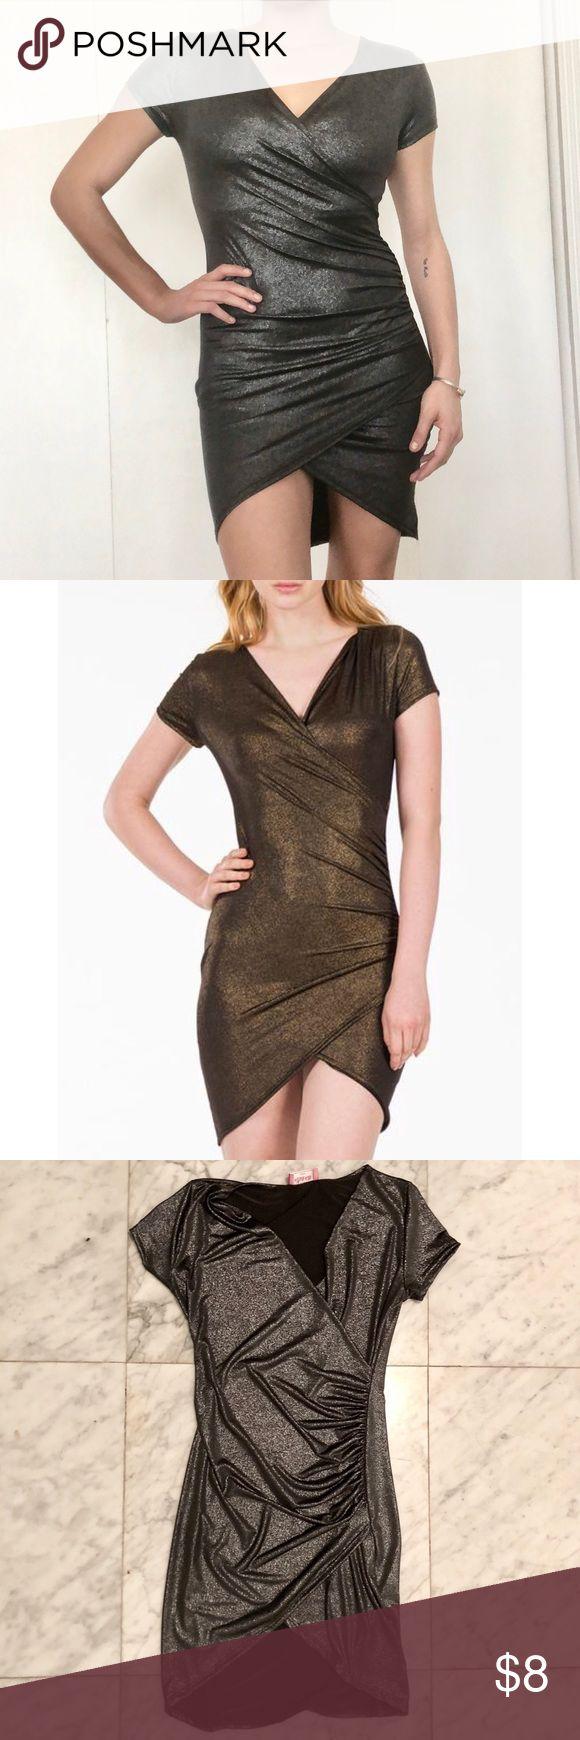 *NYE* Metallic Wrap Dress Short sleeve v-neck metallic gun metal silver bodycon dress with asymmetrical hem and rouching detail. Never been worn. Sample. Size Small *IMAGES FROM WEBSITE ARE FOR GOLD COLOR - DRESS BEING SOLD IS GUN METAL SILVER* Dresses